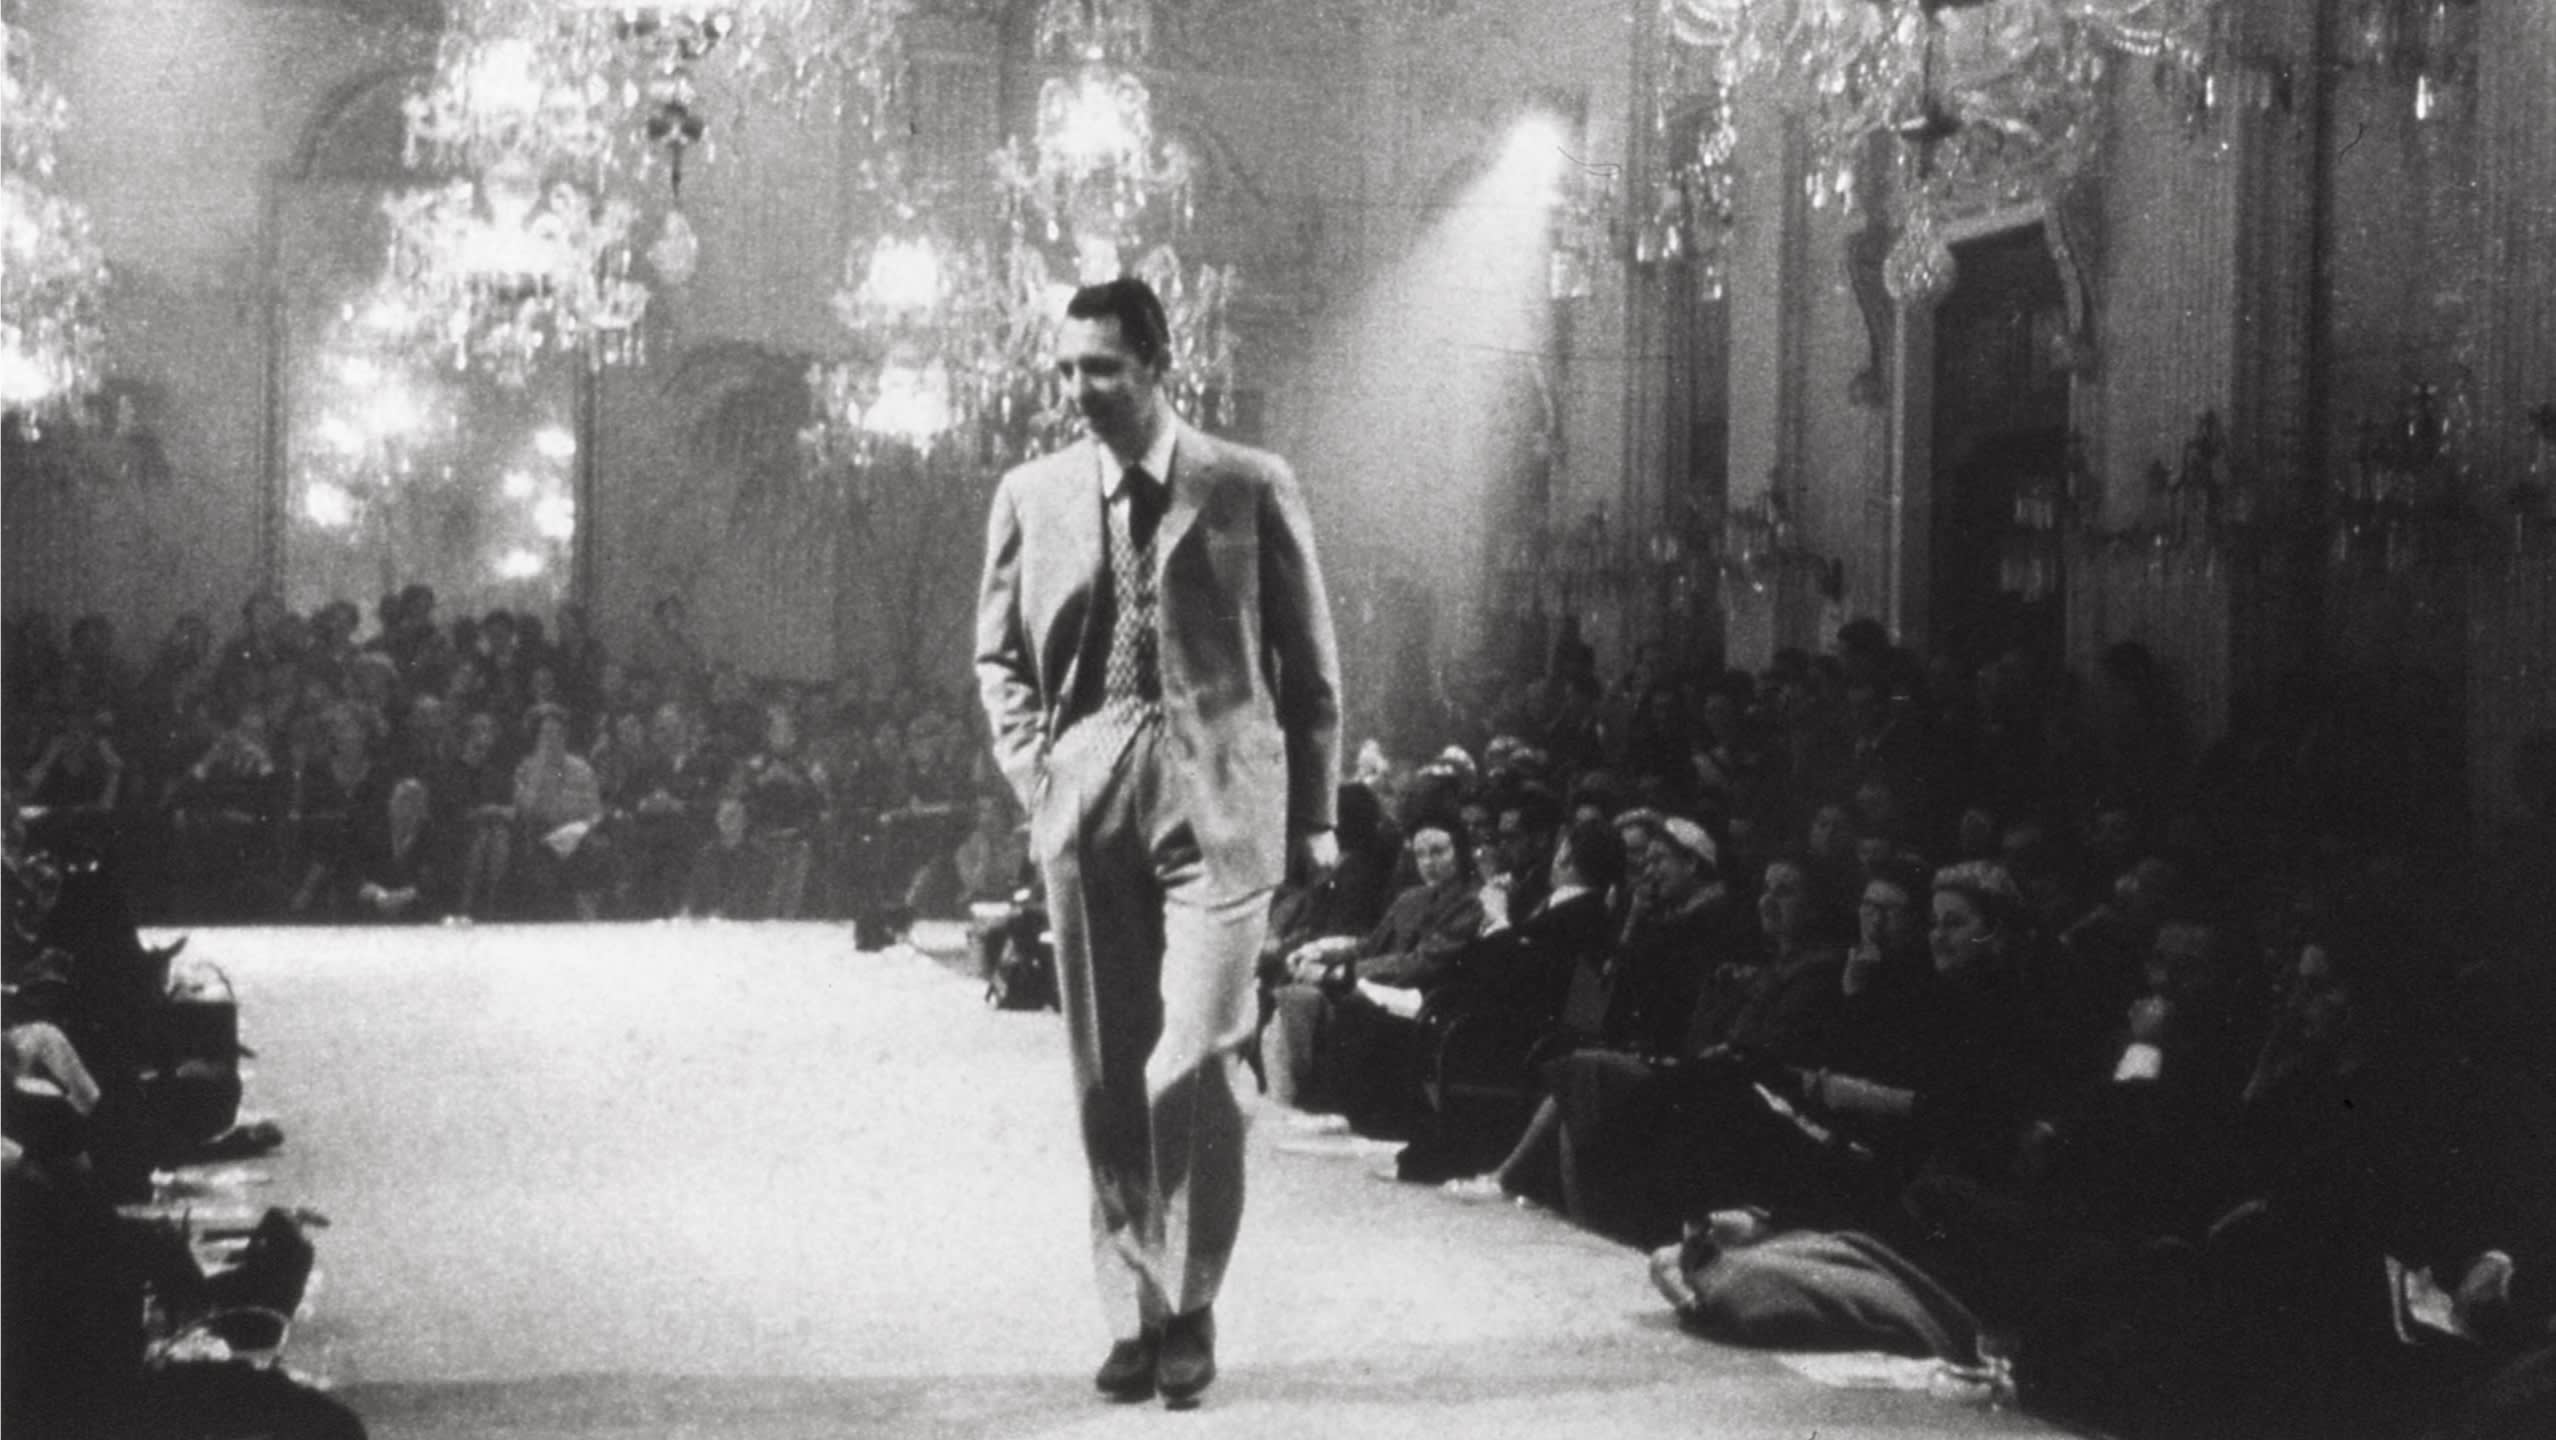 The first Brioni fashion show staged in the Sala Bianca at Palazzo Pitti in Florence, 1952